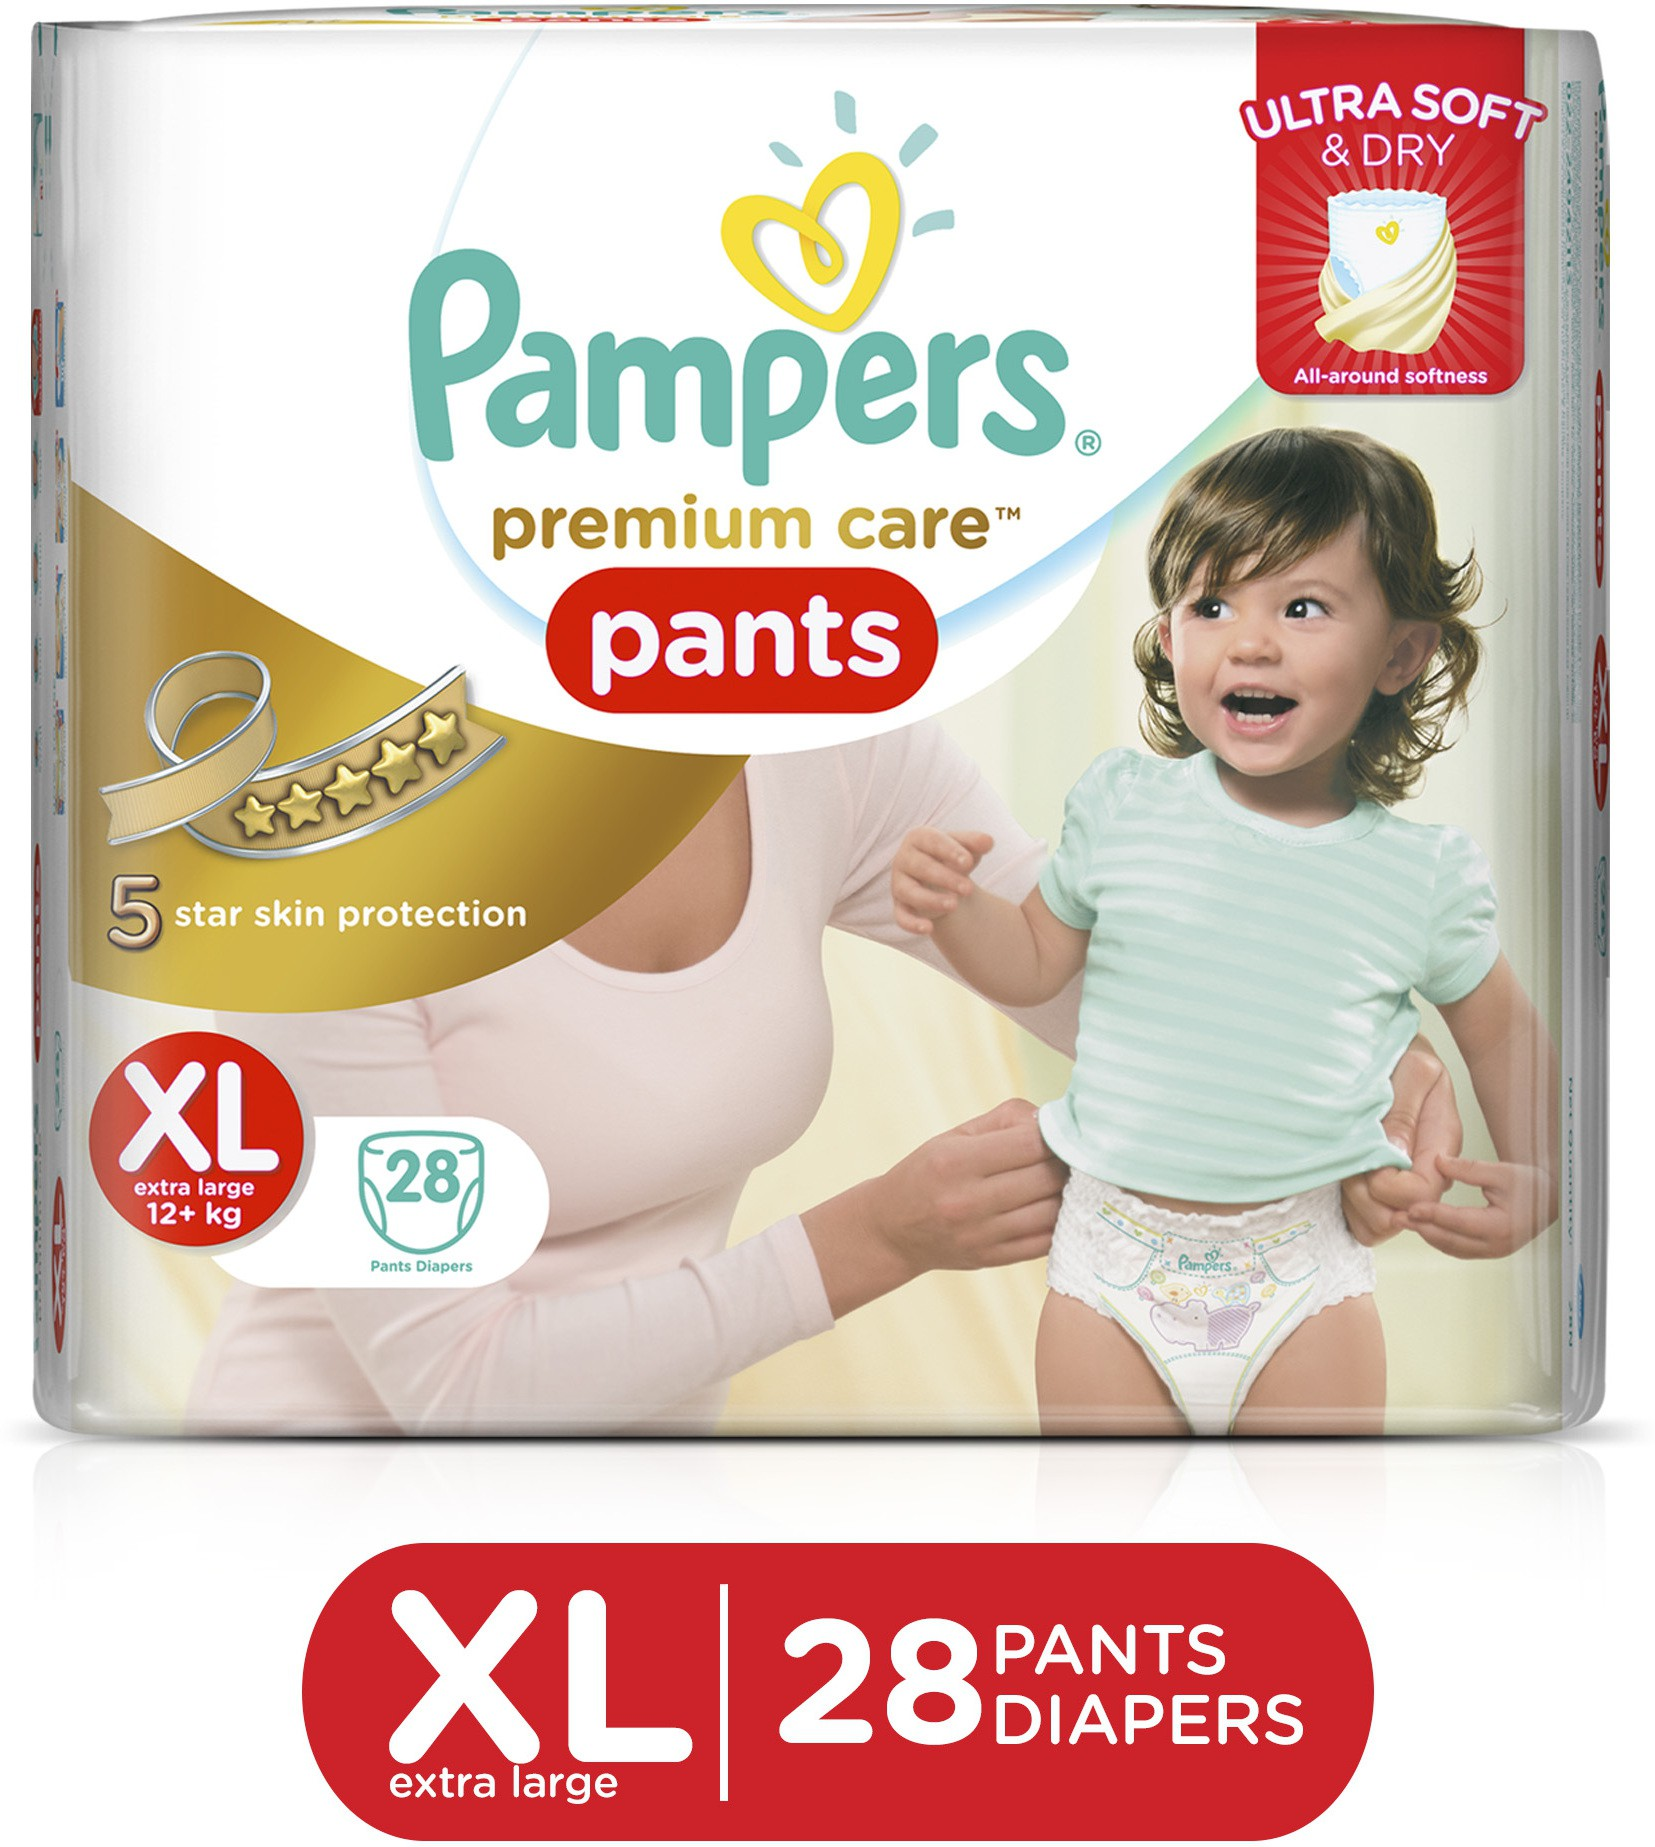 Deals - Delhi - Diapers <br> Pampers, Mamy Poko<br> Category - baby_care<br> Business - Flipkart.com